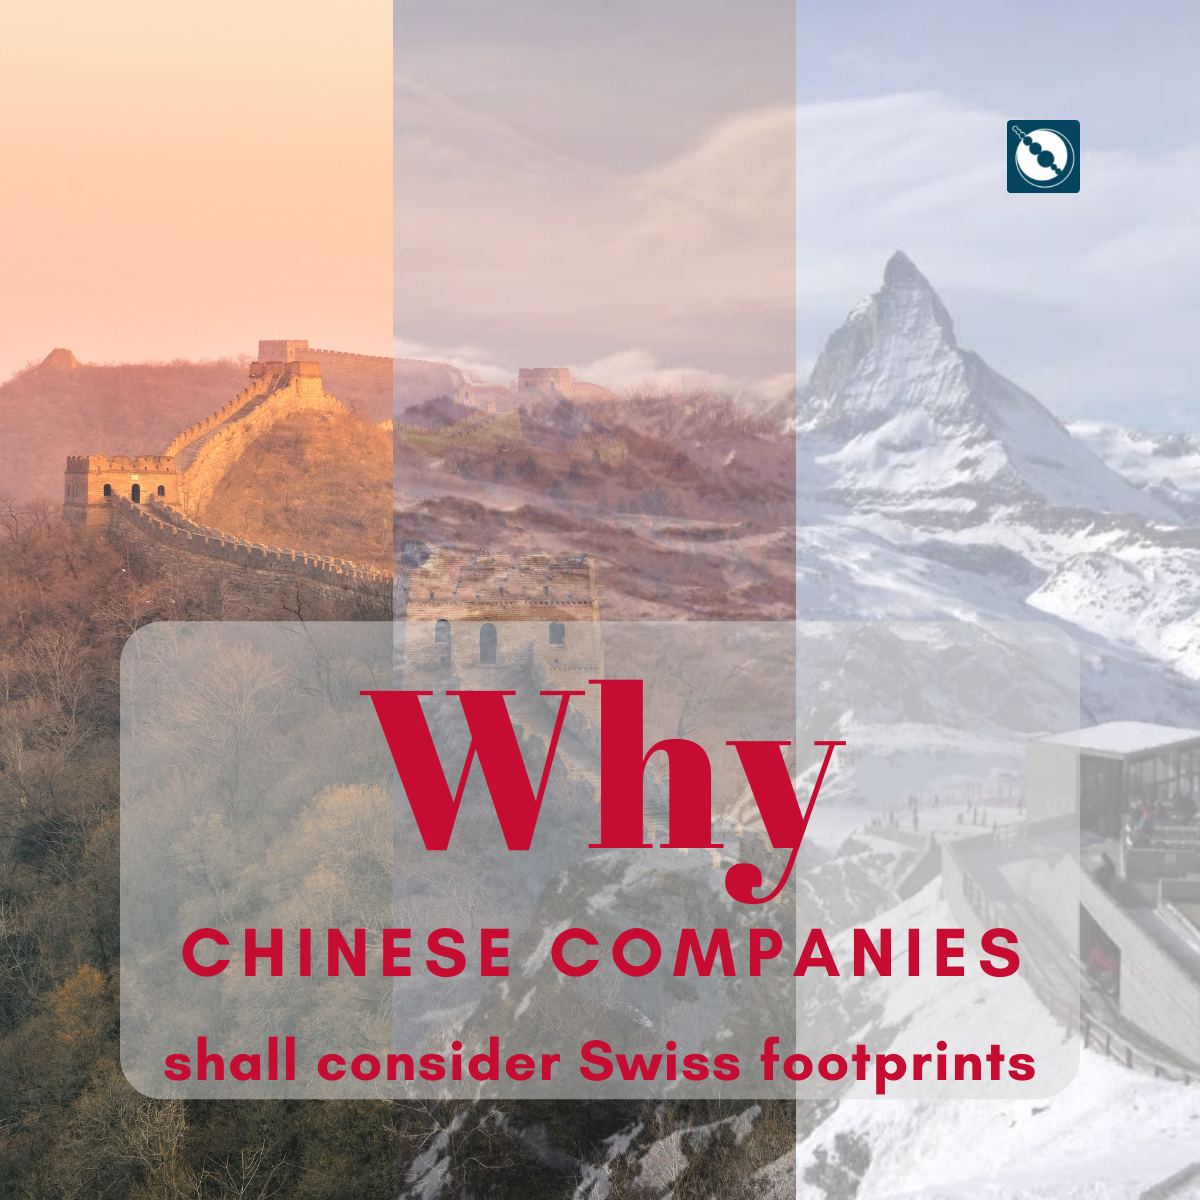 Why Chinese companies shall consider Swiss footprints